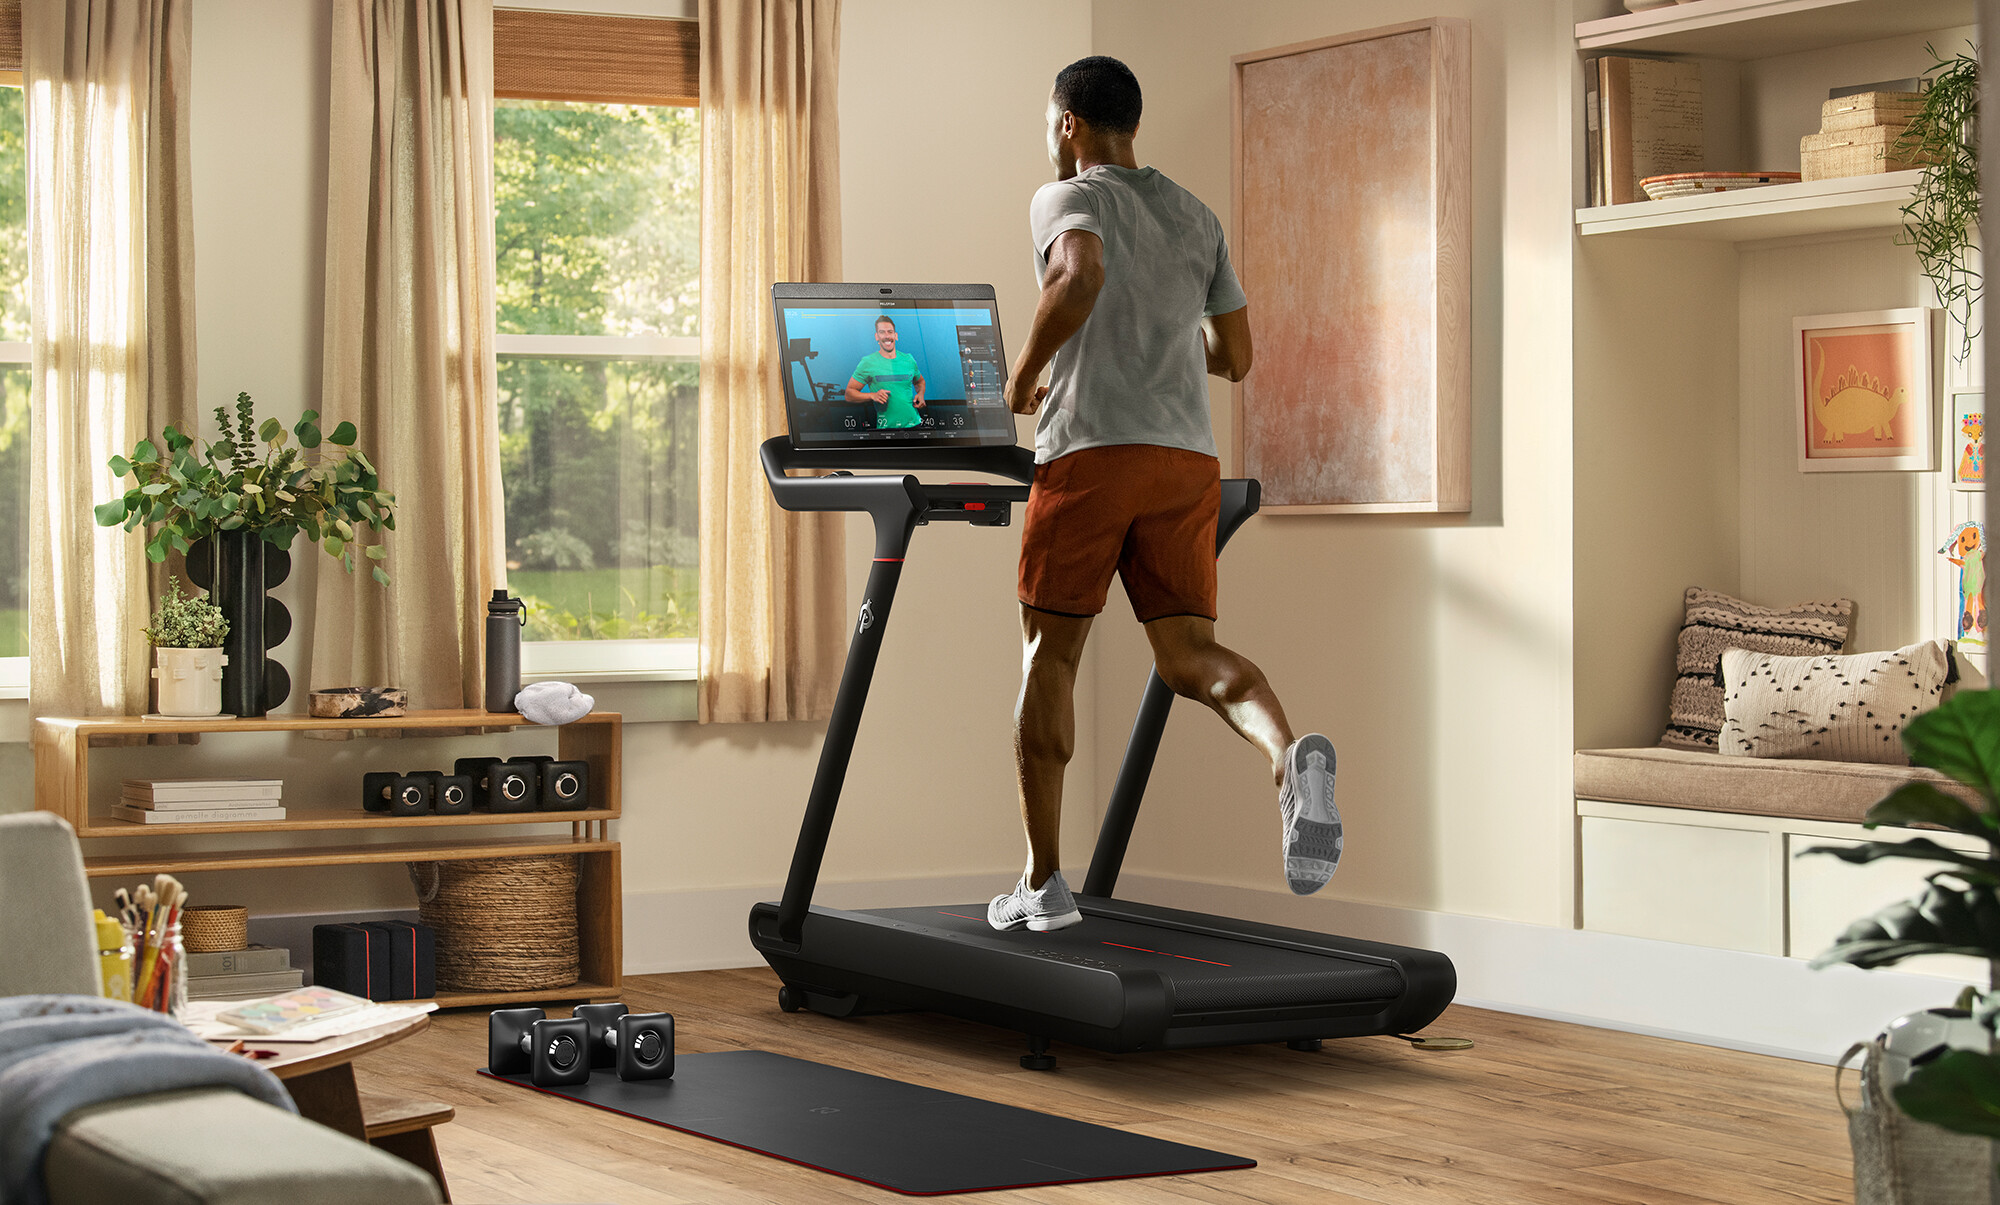 Peloton's lower-end treadmill is finally going on sale after addressing safety issues